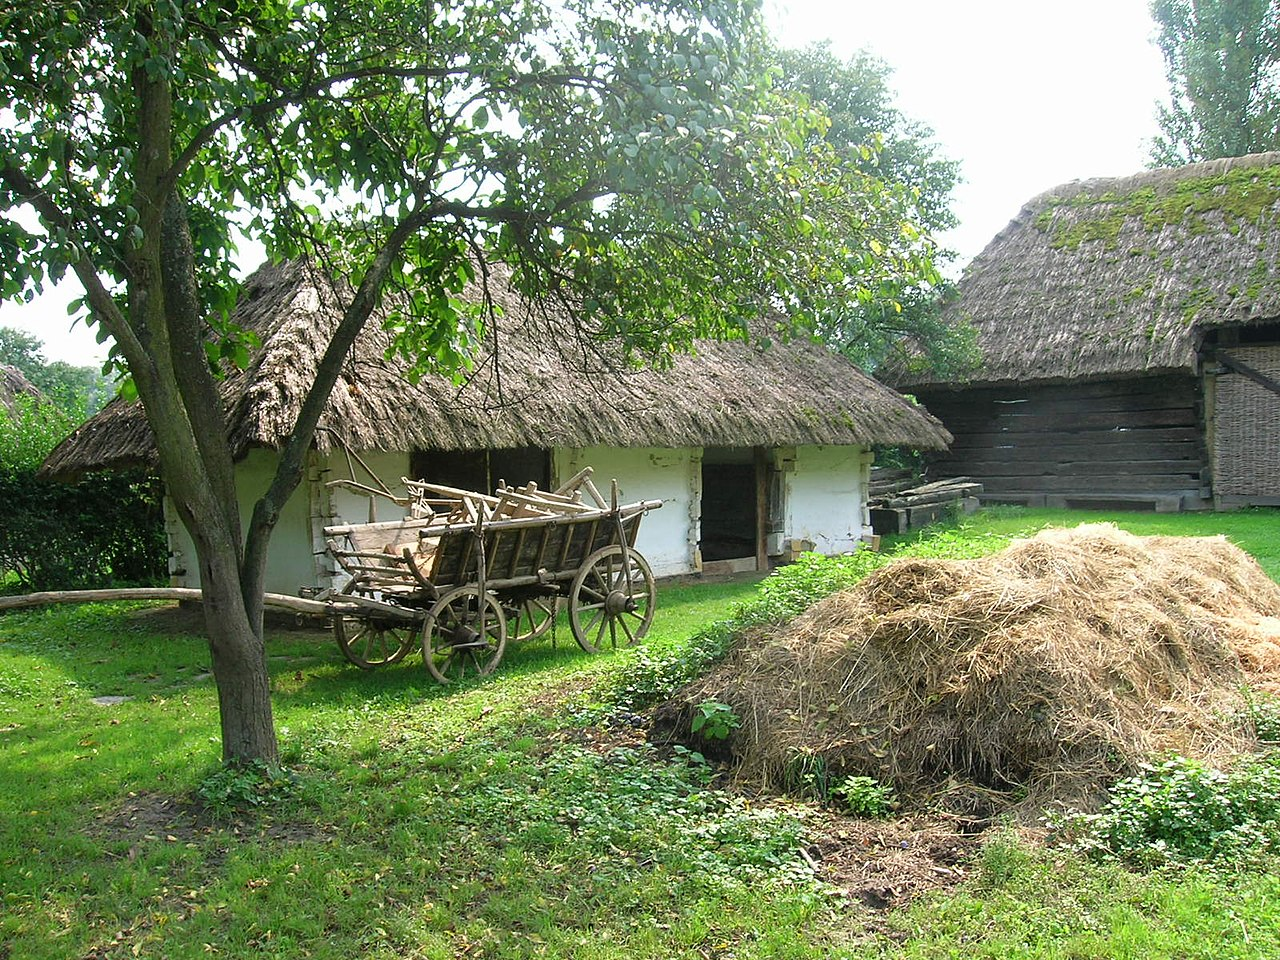 File gocsej village house backyard wikimedia commons for Bangladesh village house design